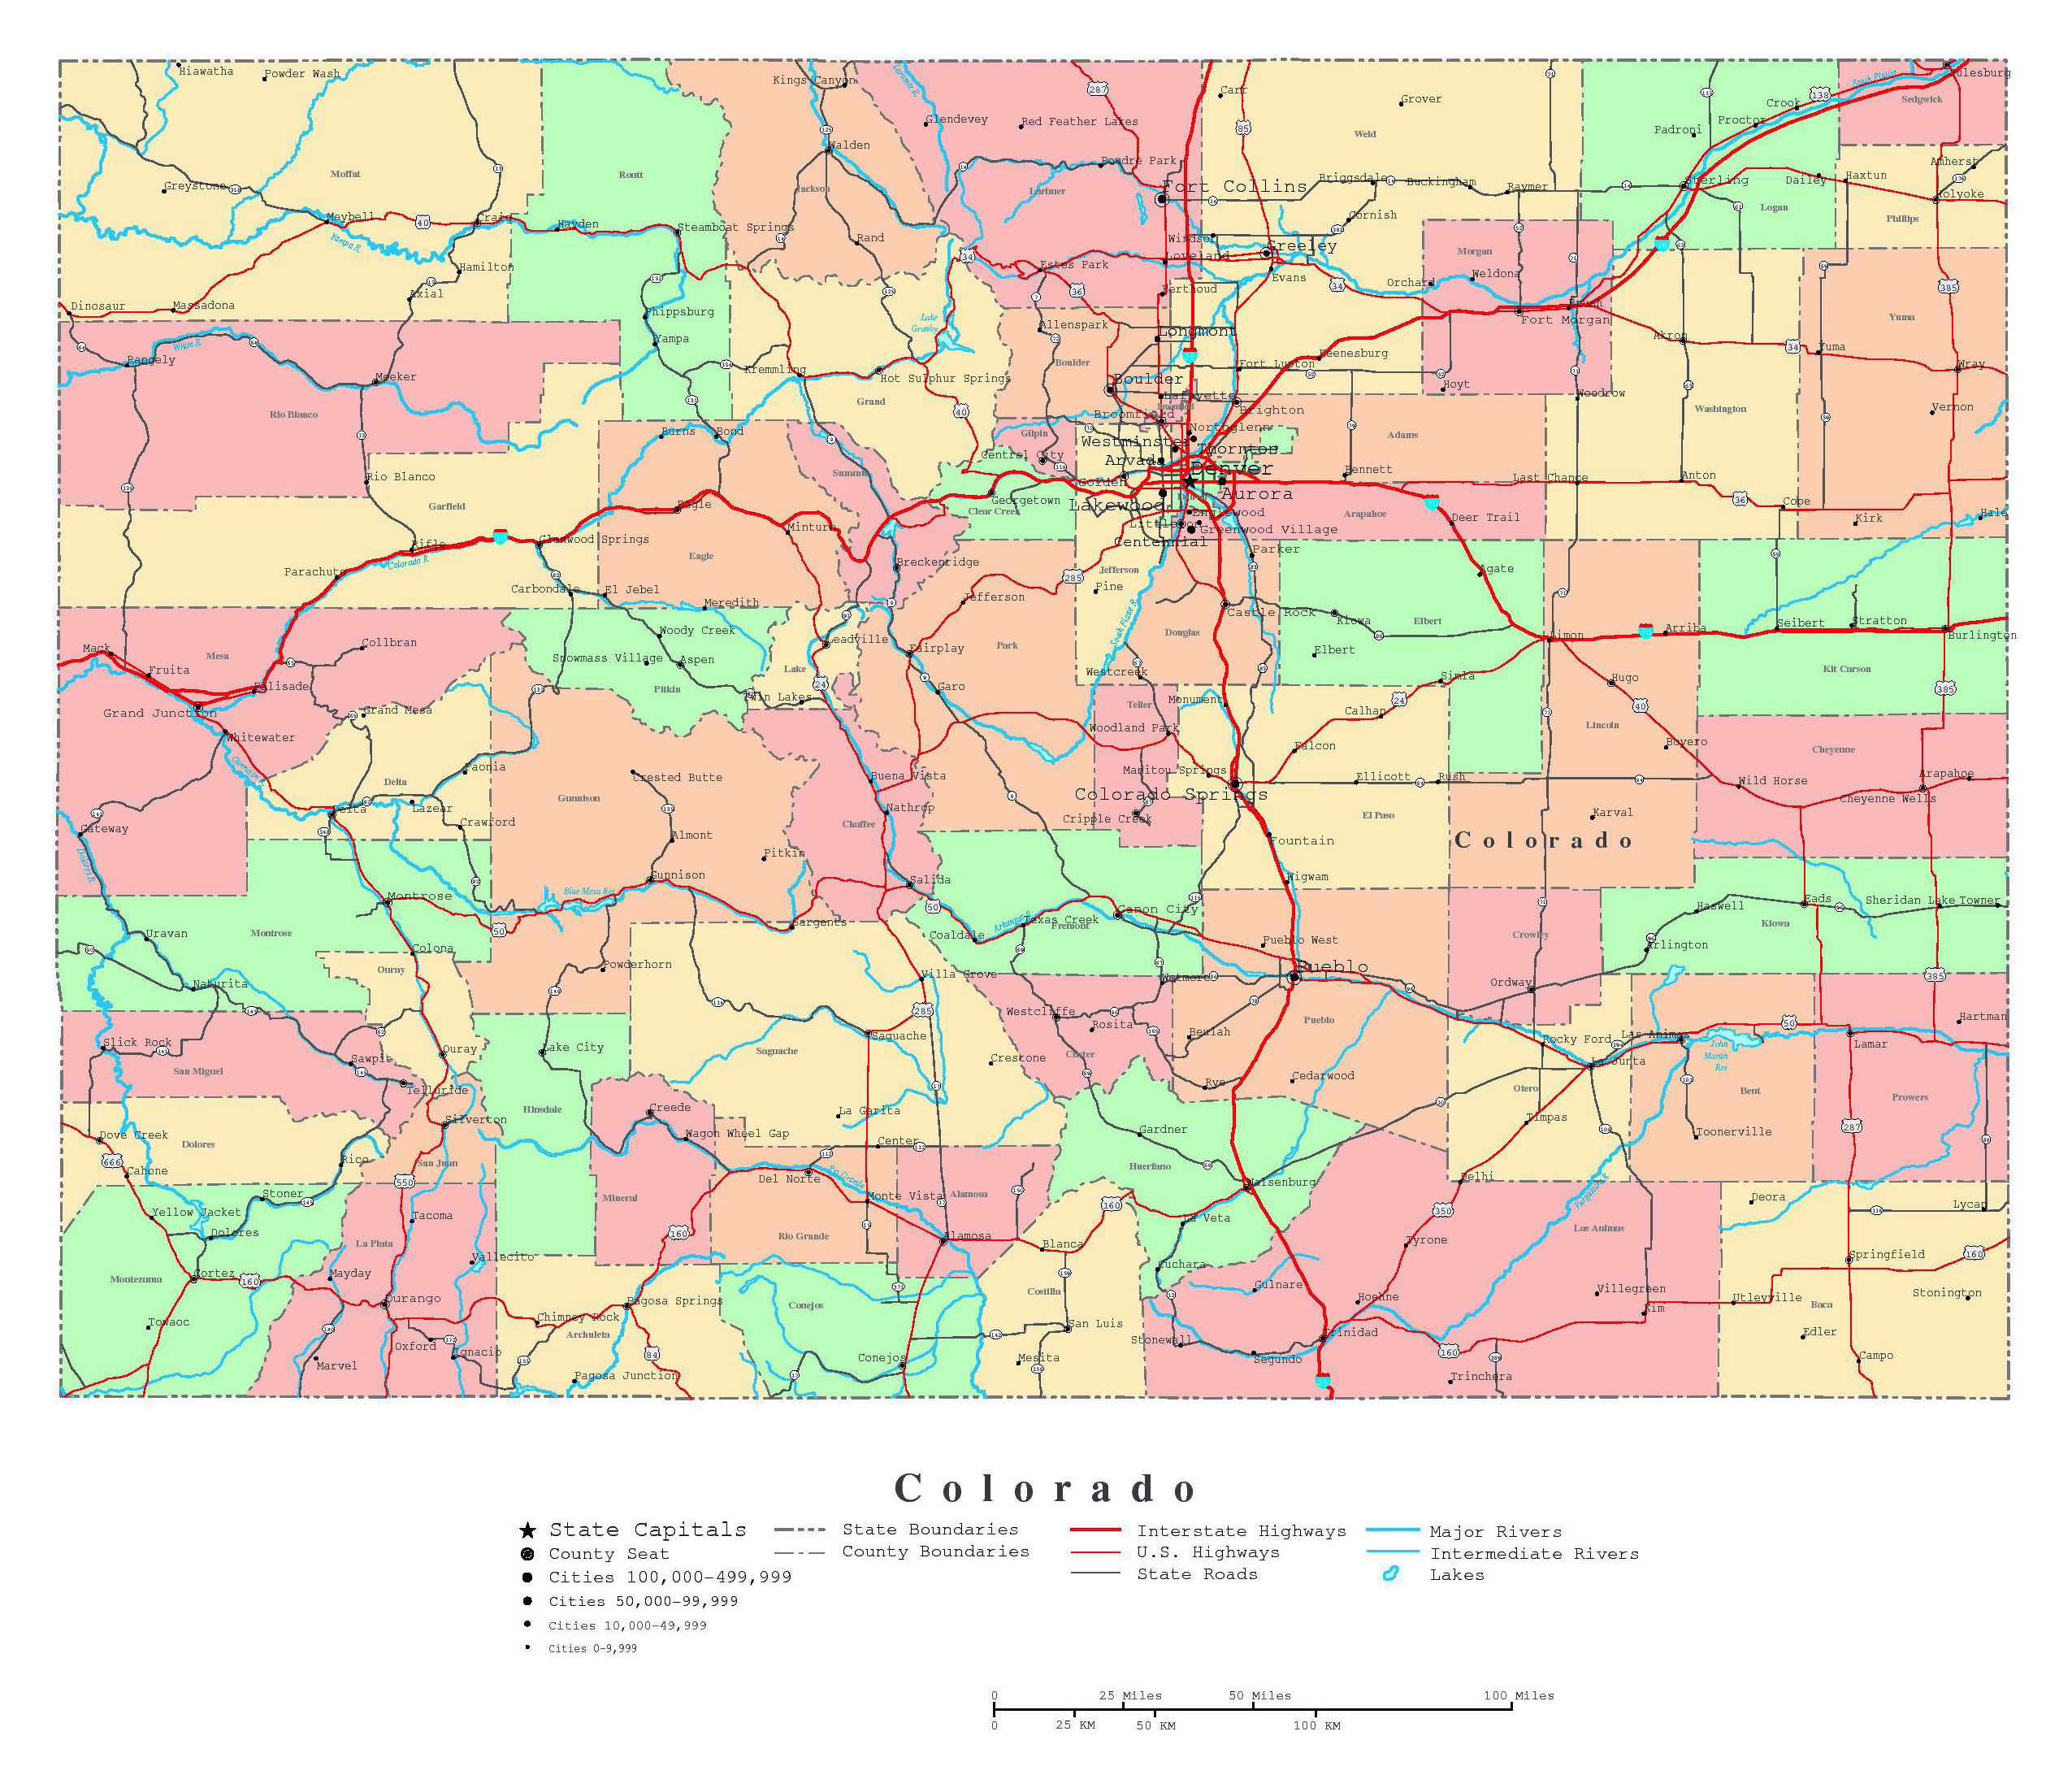 Colorado Counties Road Map USA Colorado Map Stock Images - Map of us roads and cities